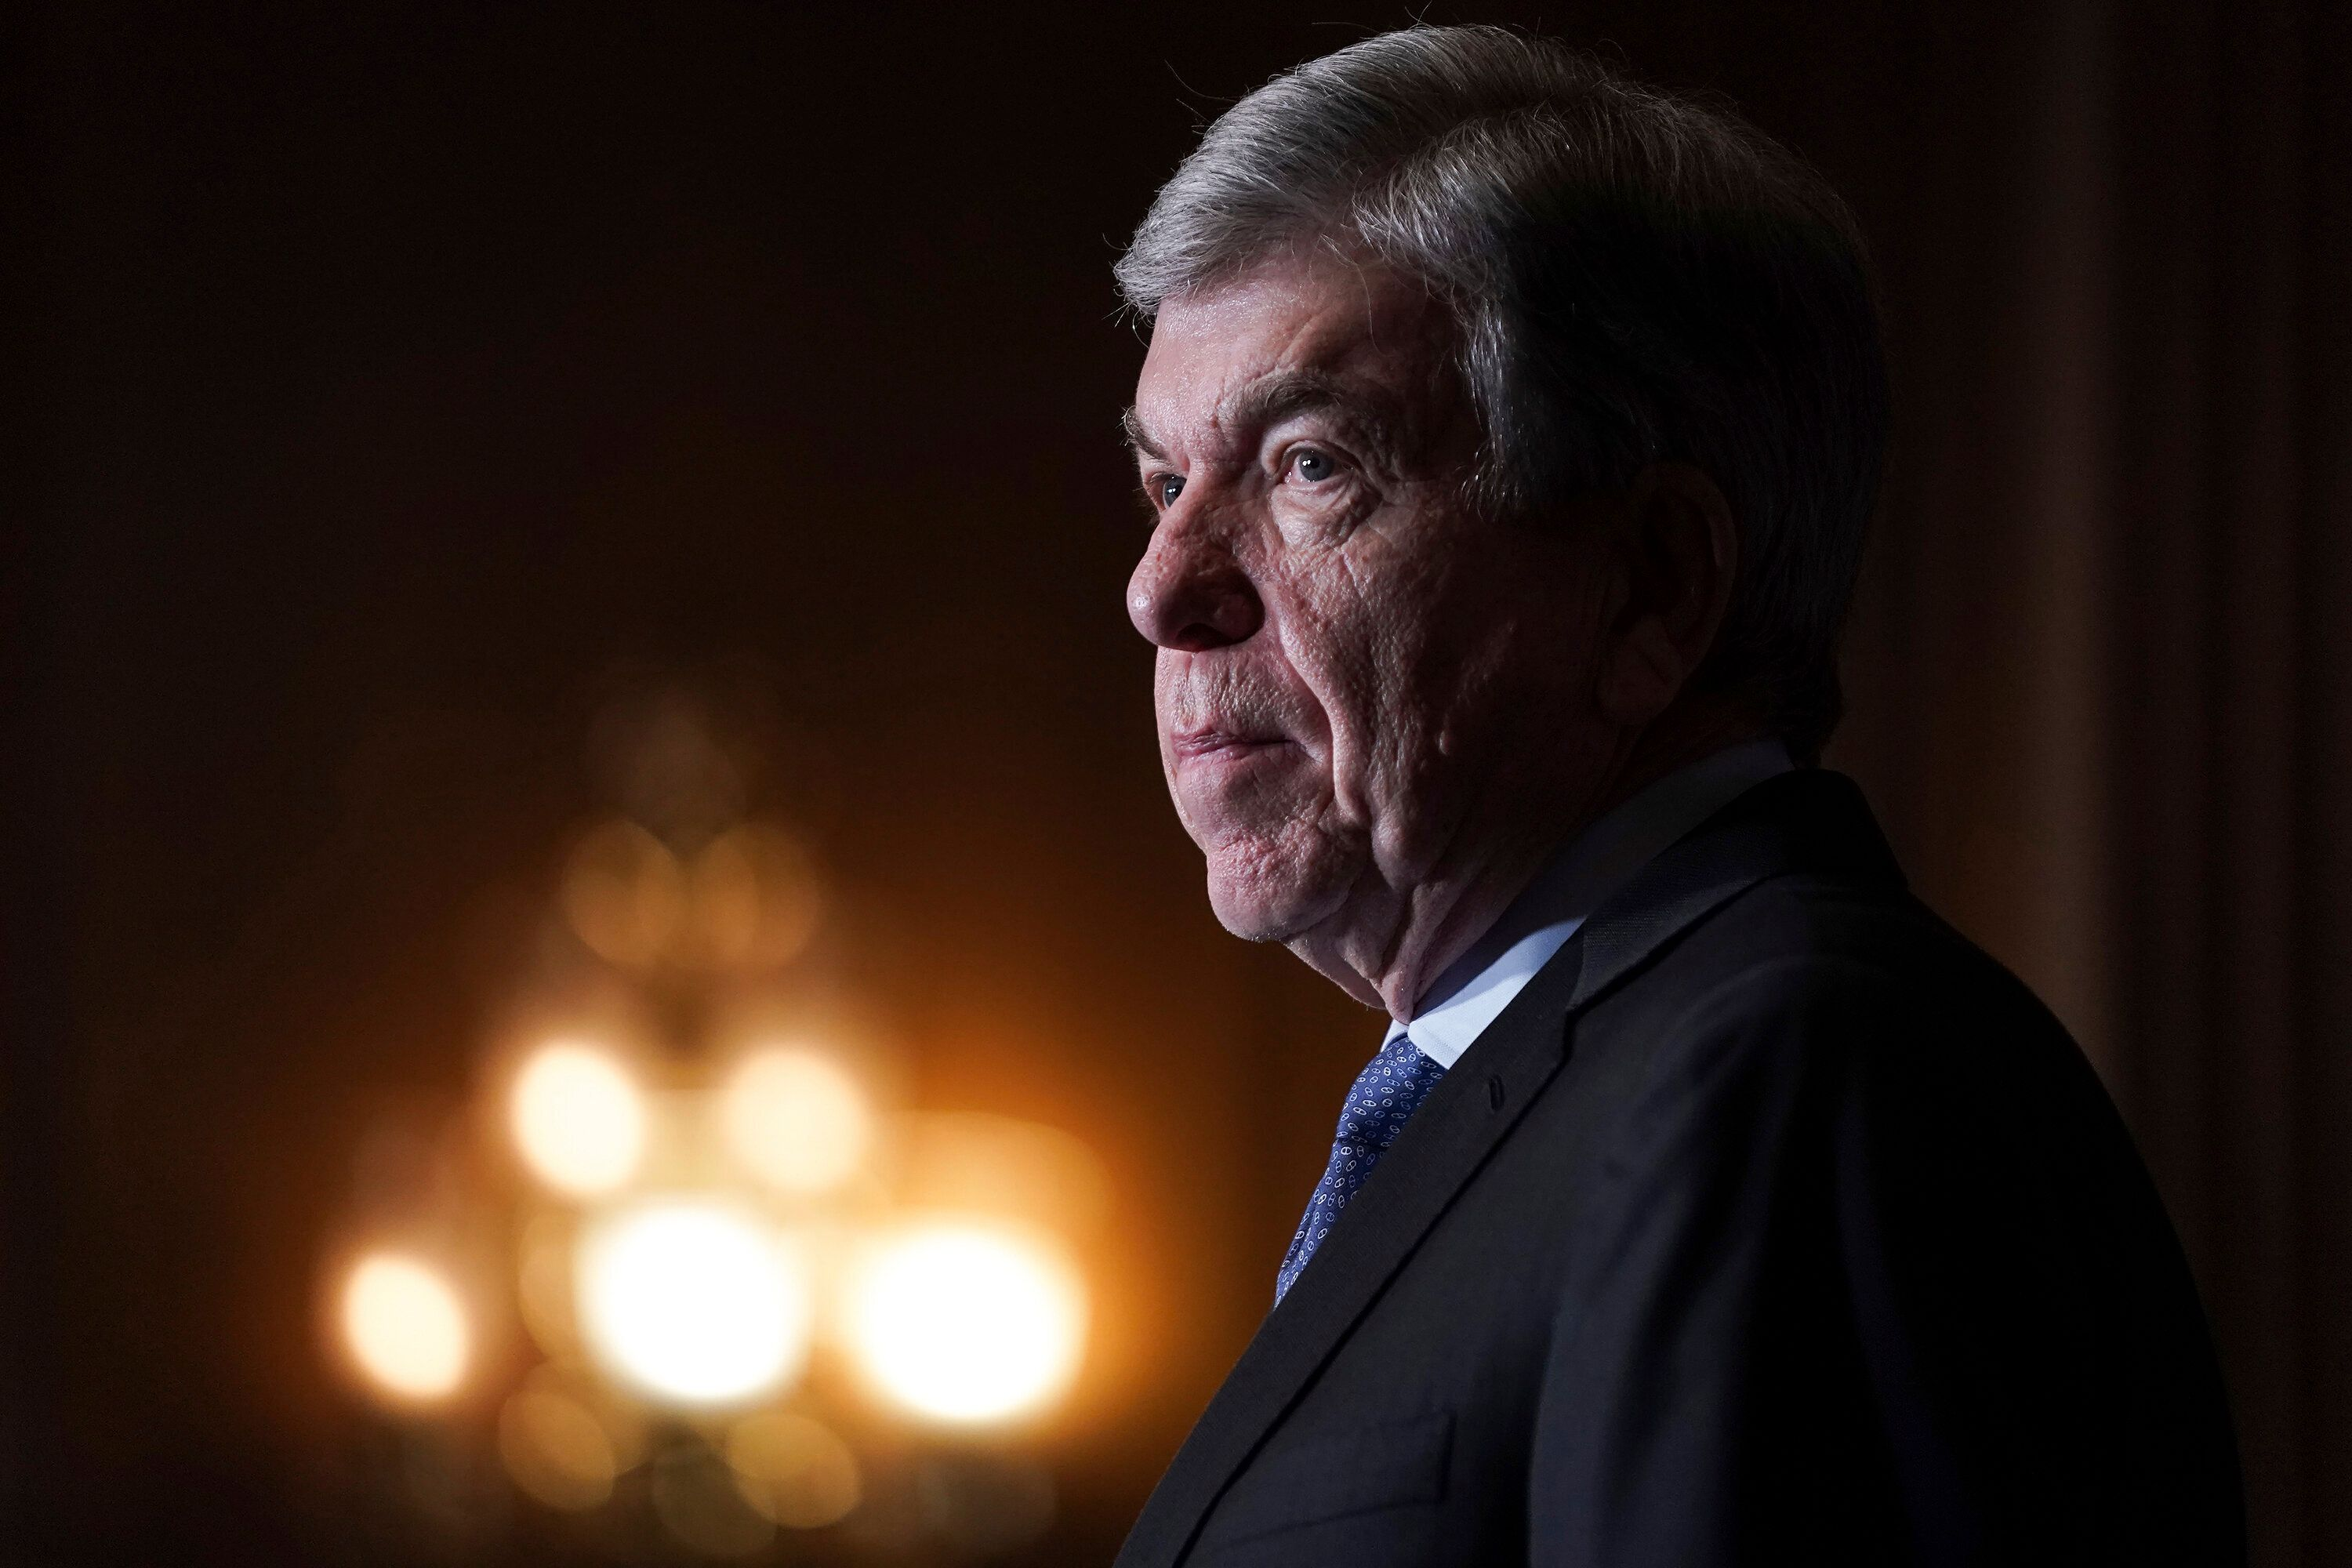 """Sen. Roy Blunt said Trump's call for his supporters to march to the U.S. Capitol on Wednesday was """"clearly reckless"""" but said"""